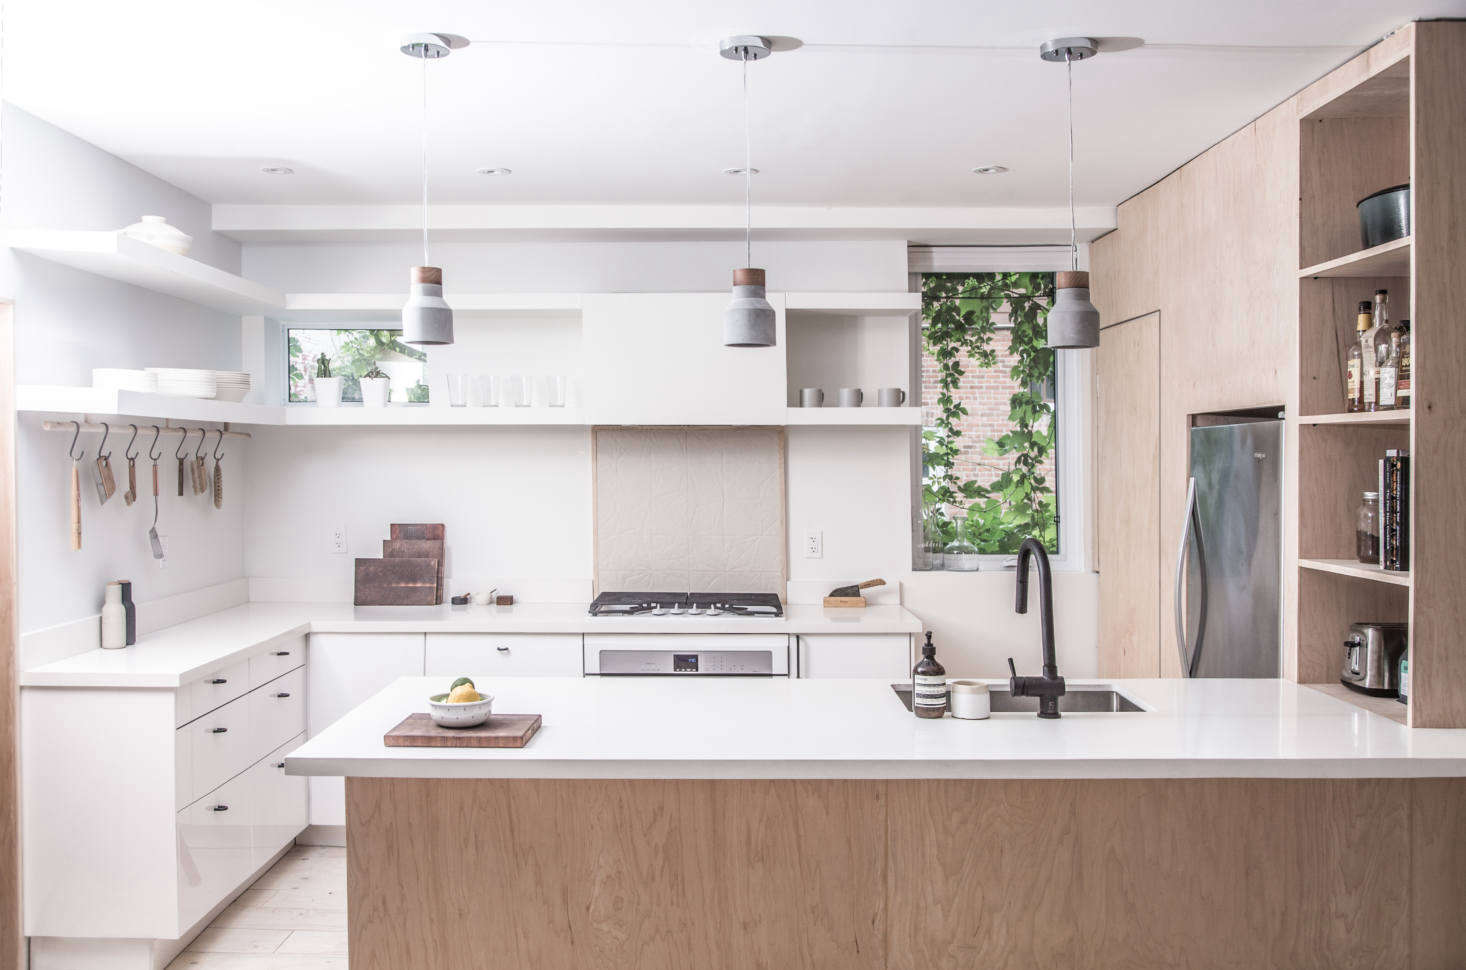 The refrigerator is fitted into the plywood volume but left undisguised. The range has a tiled backsplash and the two-tiered overhead shelves conceal the exhaust fan.